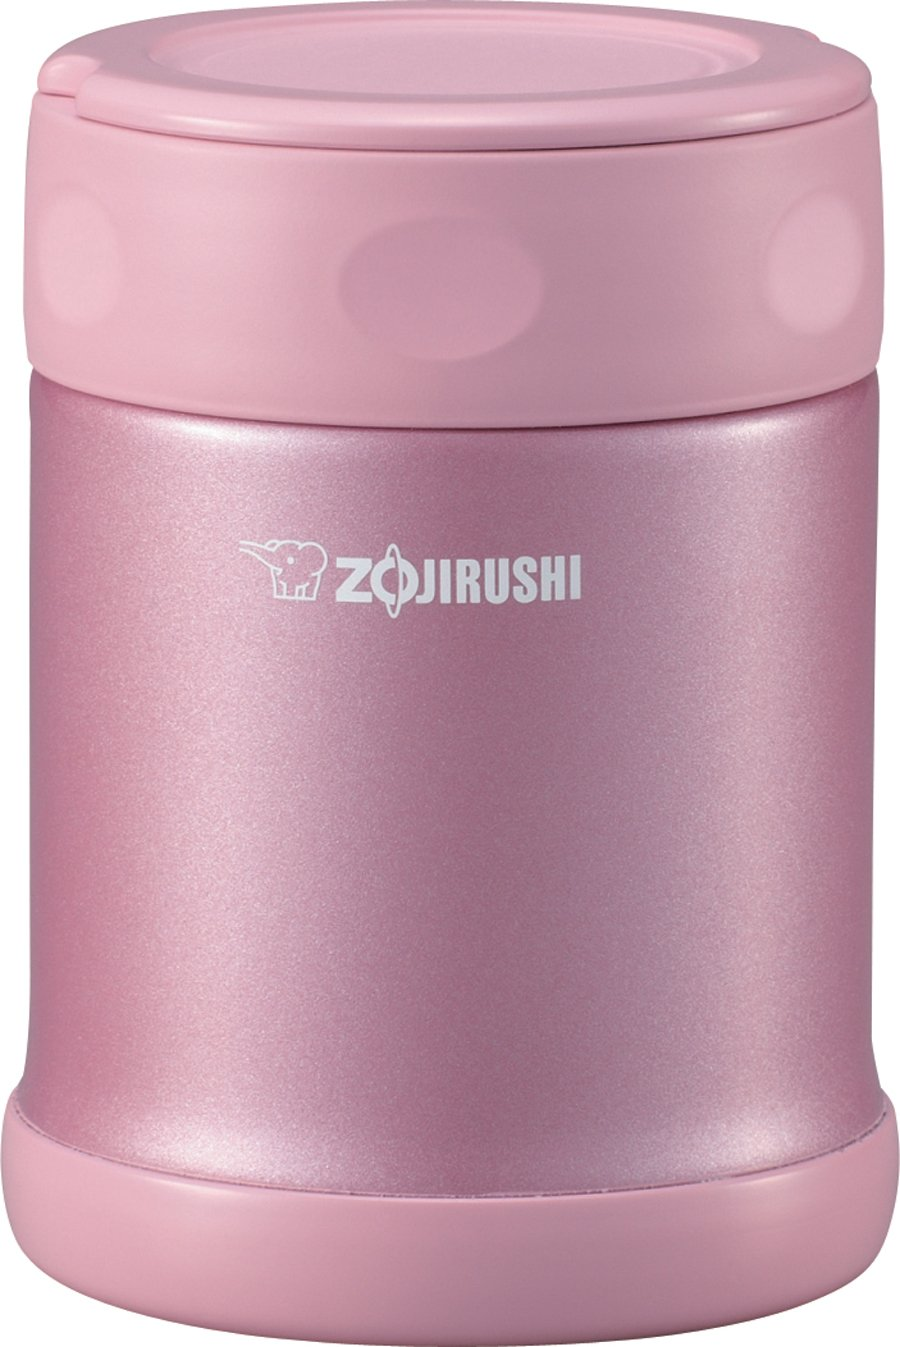 Zojirushi SW-EAE35PS Stainless Steel Food Jar, 11.8-Ounce/0.35-Liter, Shiny Pink